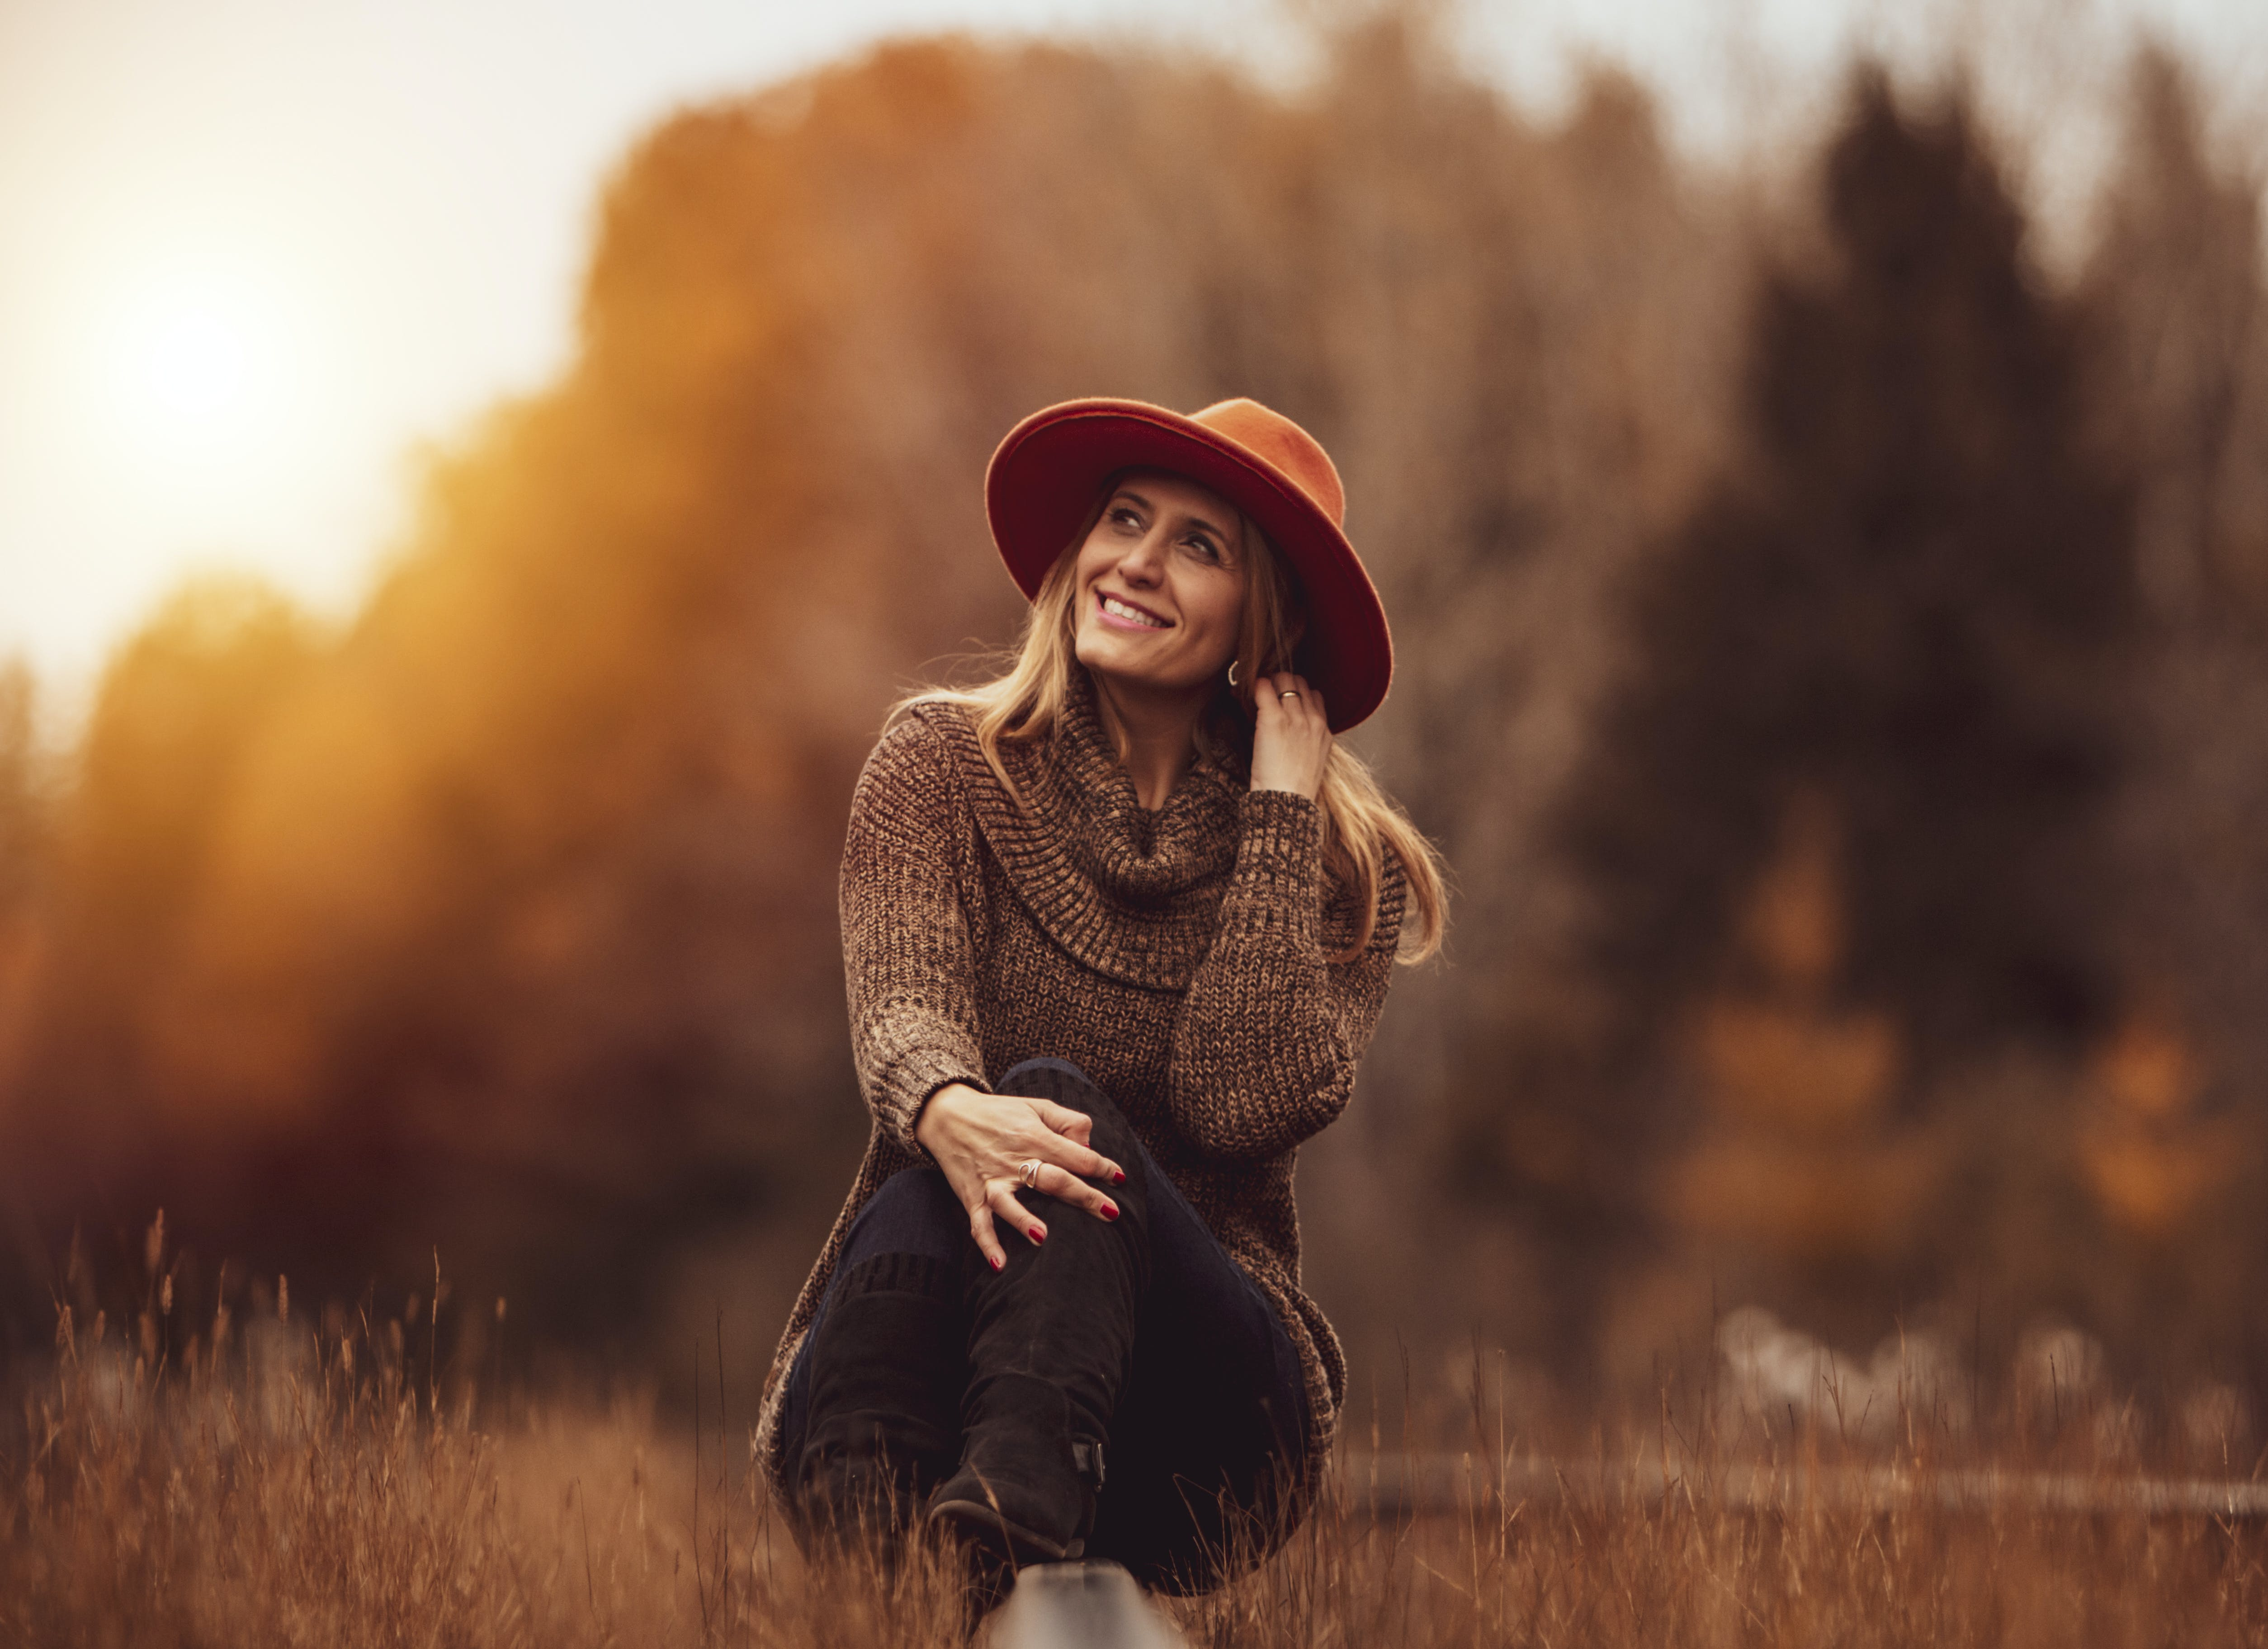 Free stock photo of autumn, autumn colors, blonde hair, hat